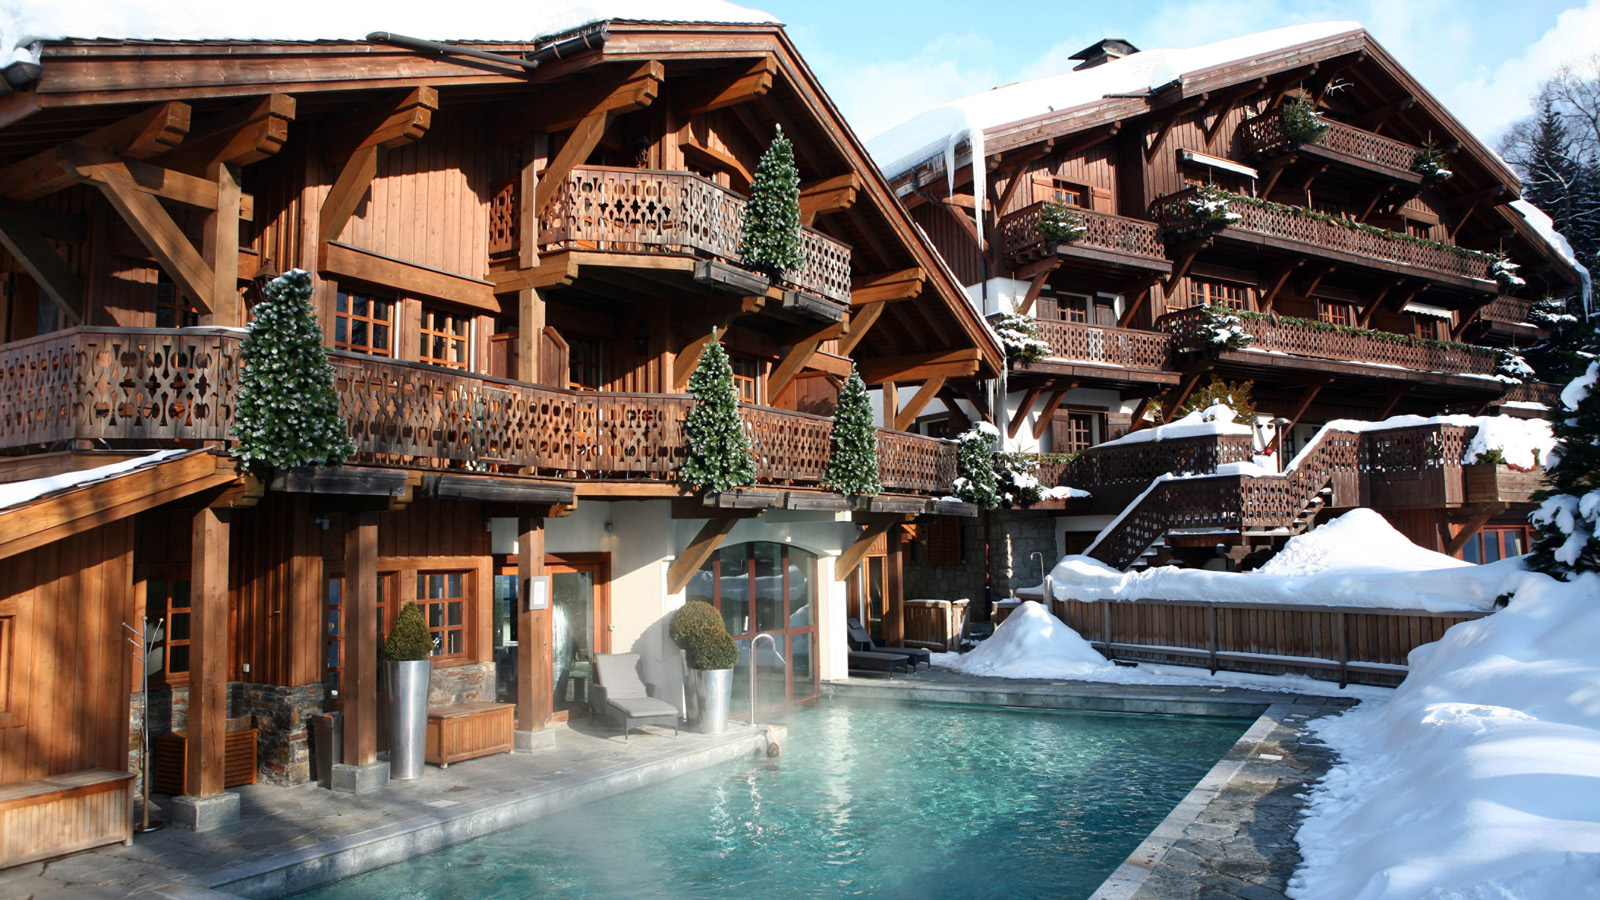 Le Refuge Megeve Architecte four seasons to introduce luxury experience in the french